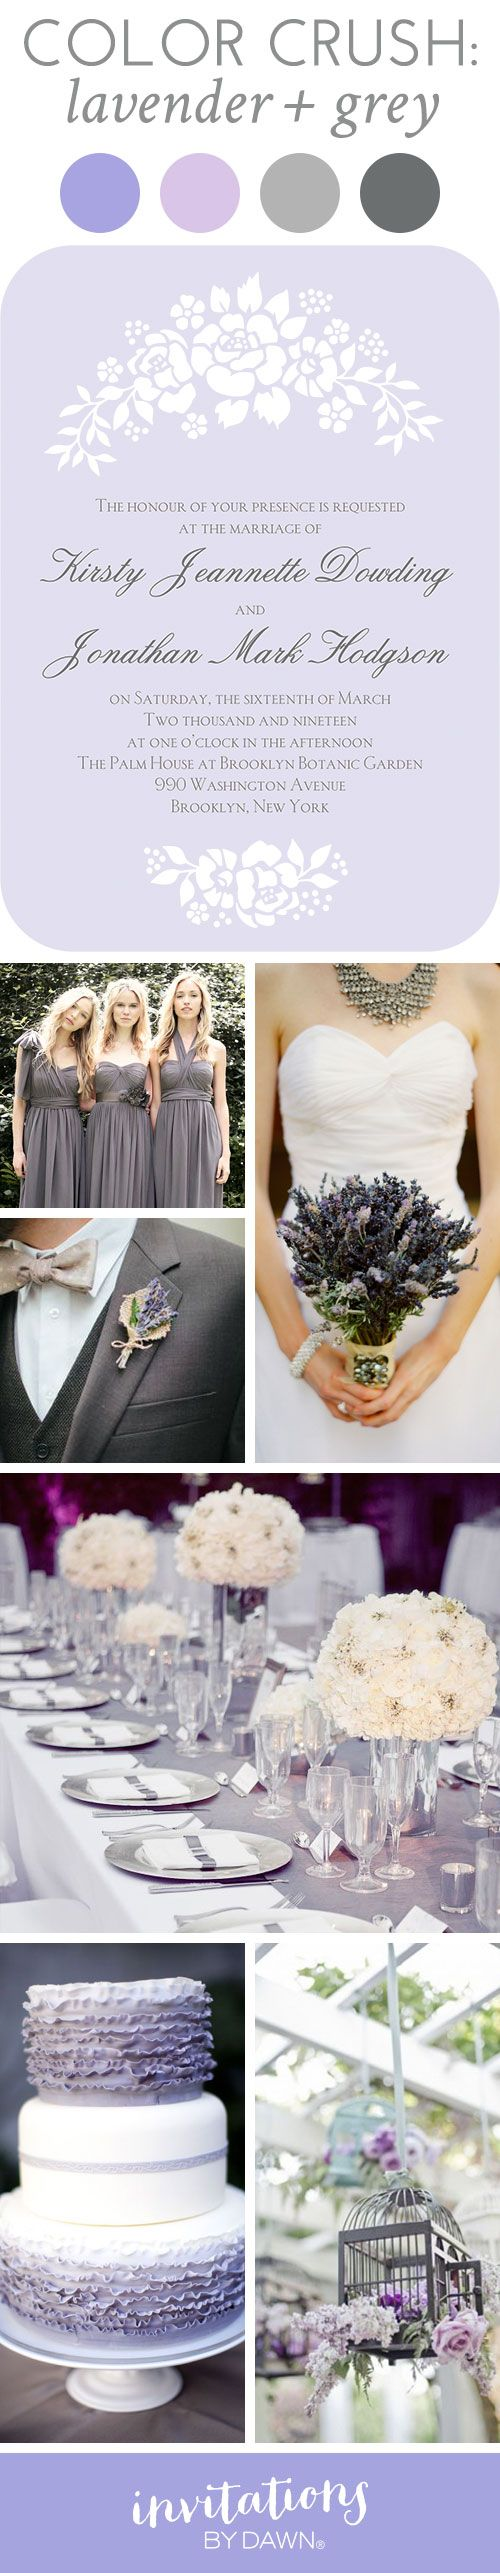 Wedding Color Crush: Lavender and Grey #purplewedding #colincowie #floralwedding